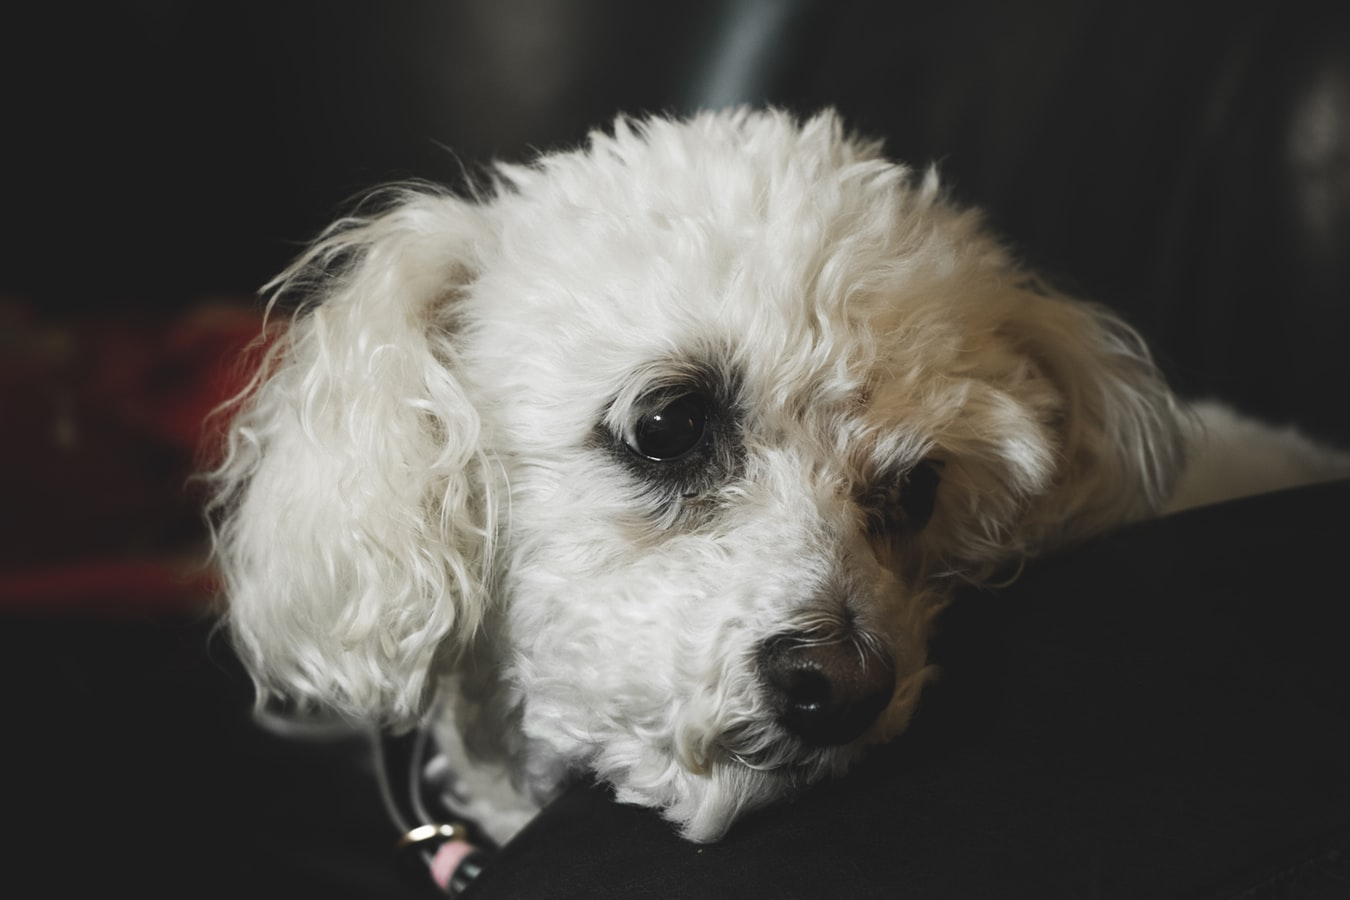 Remote Dog Cameras: Keeping an Eye on your Poodle